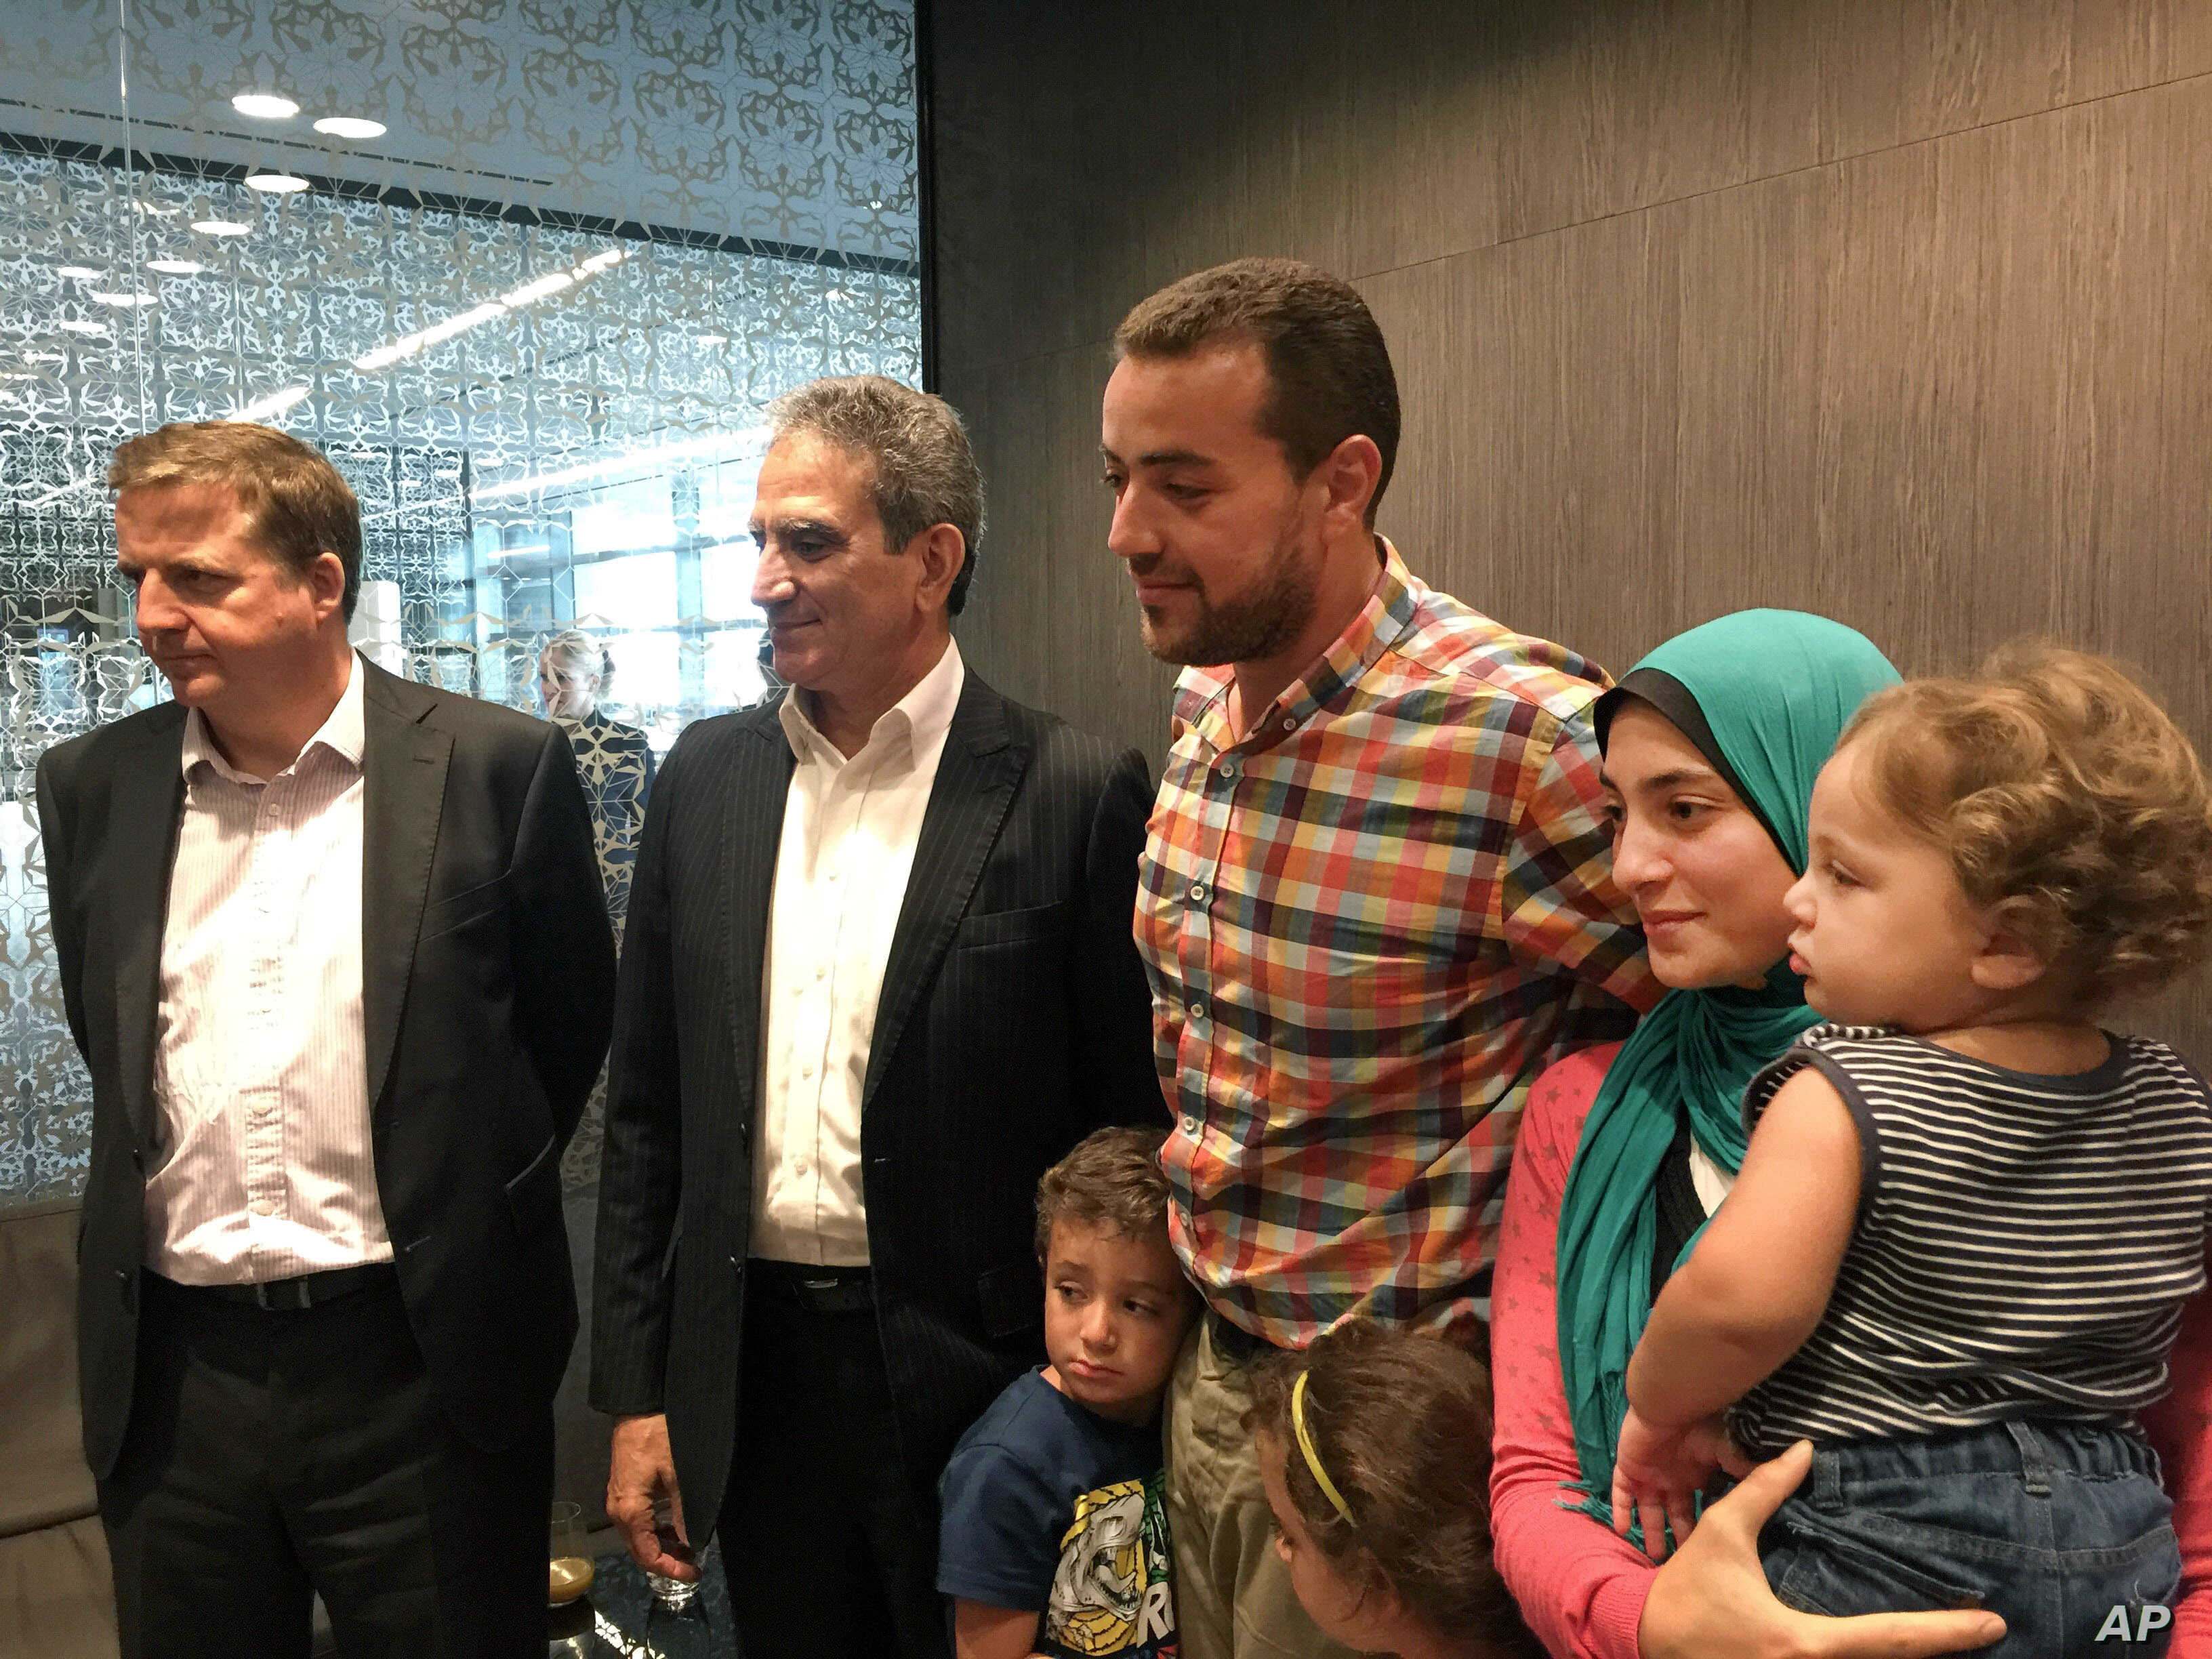 Egyptian Al-Jazeera English journalist Baher Mohammed and his family are welcomed by his colleagues in Doha, Qatar, Oct. 14, 2015.